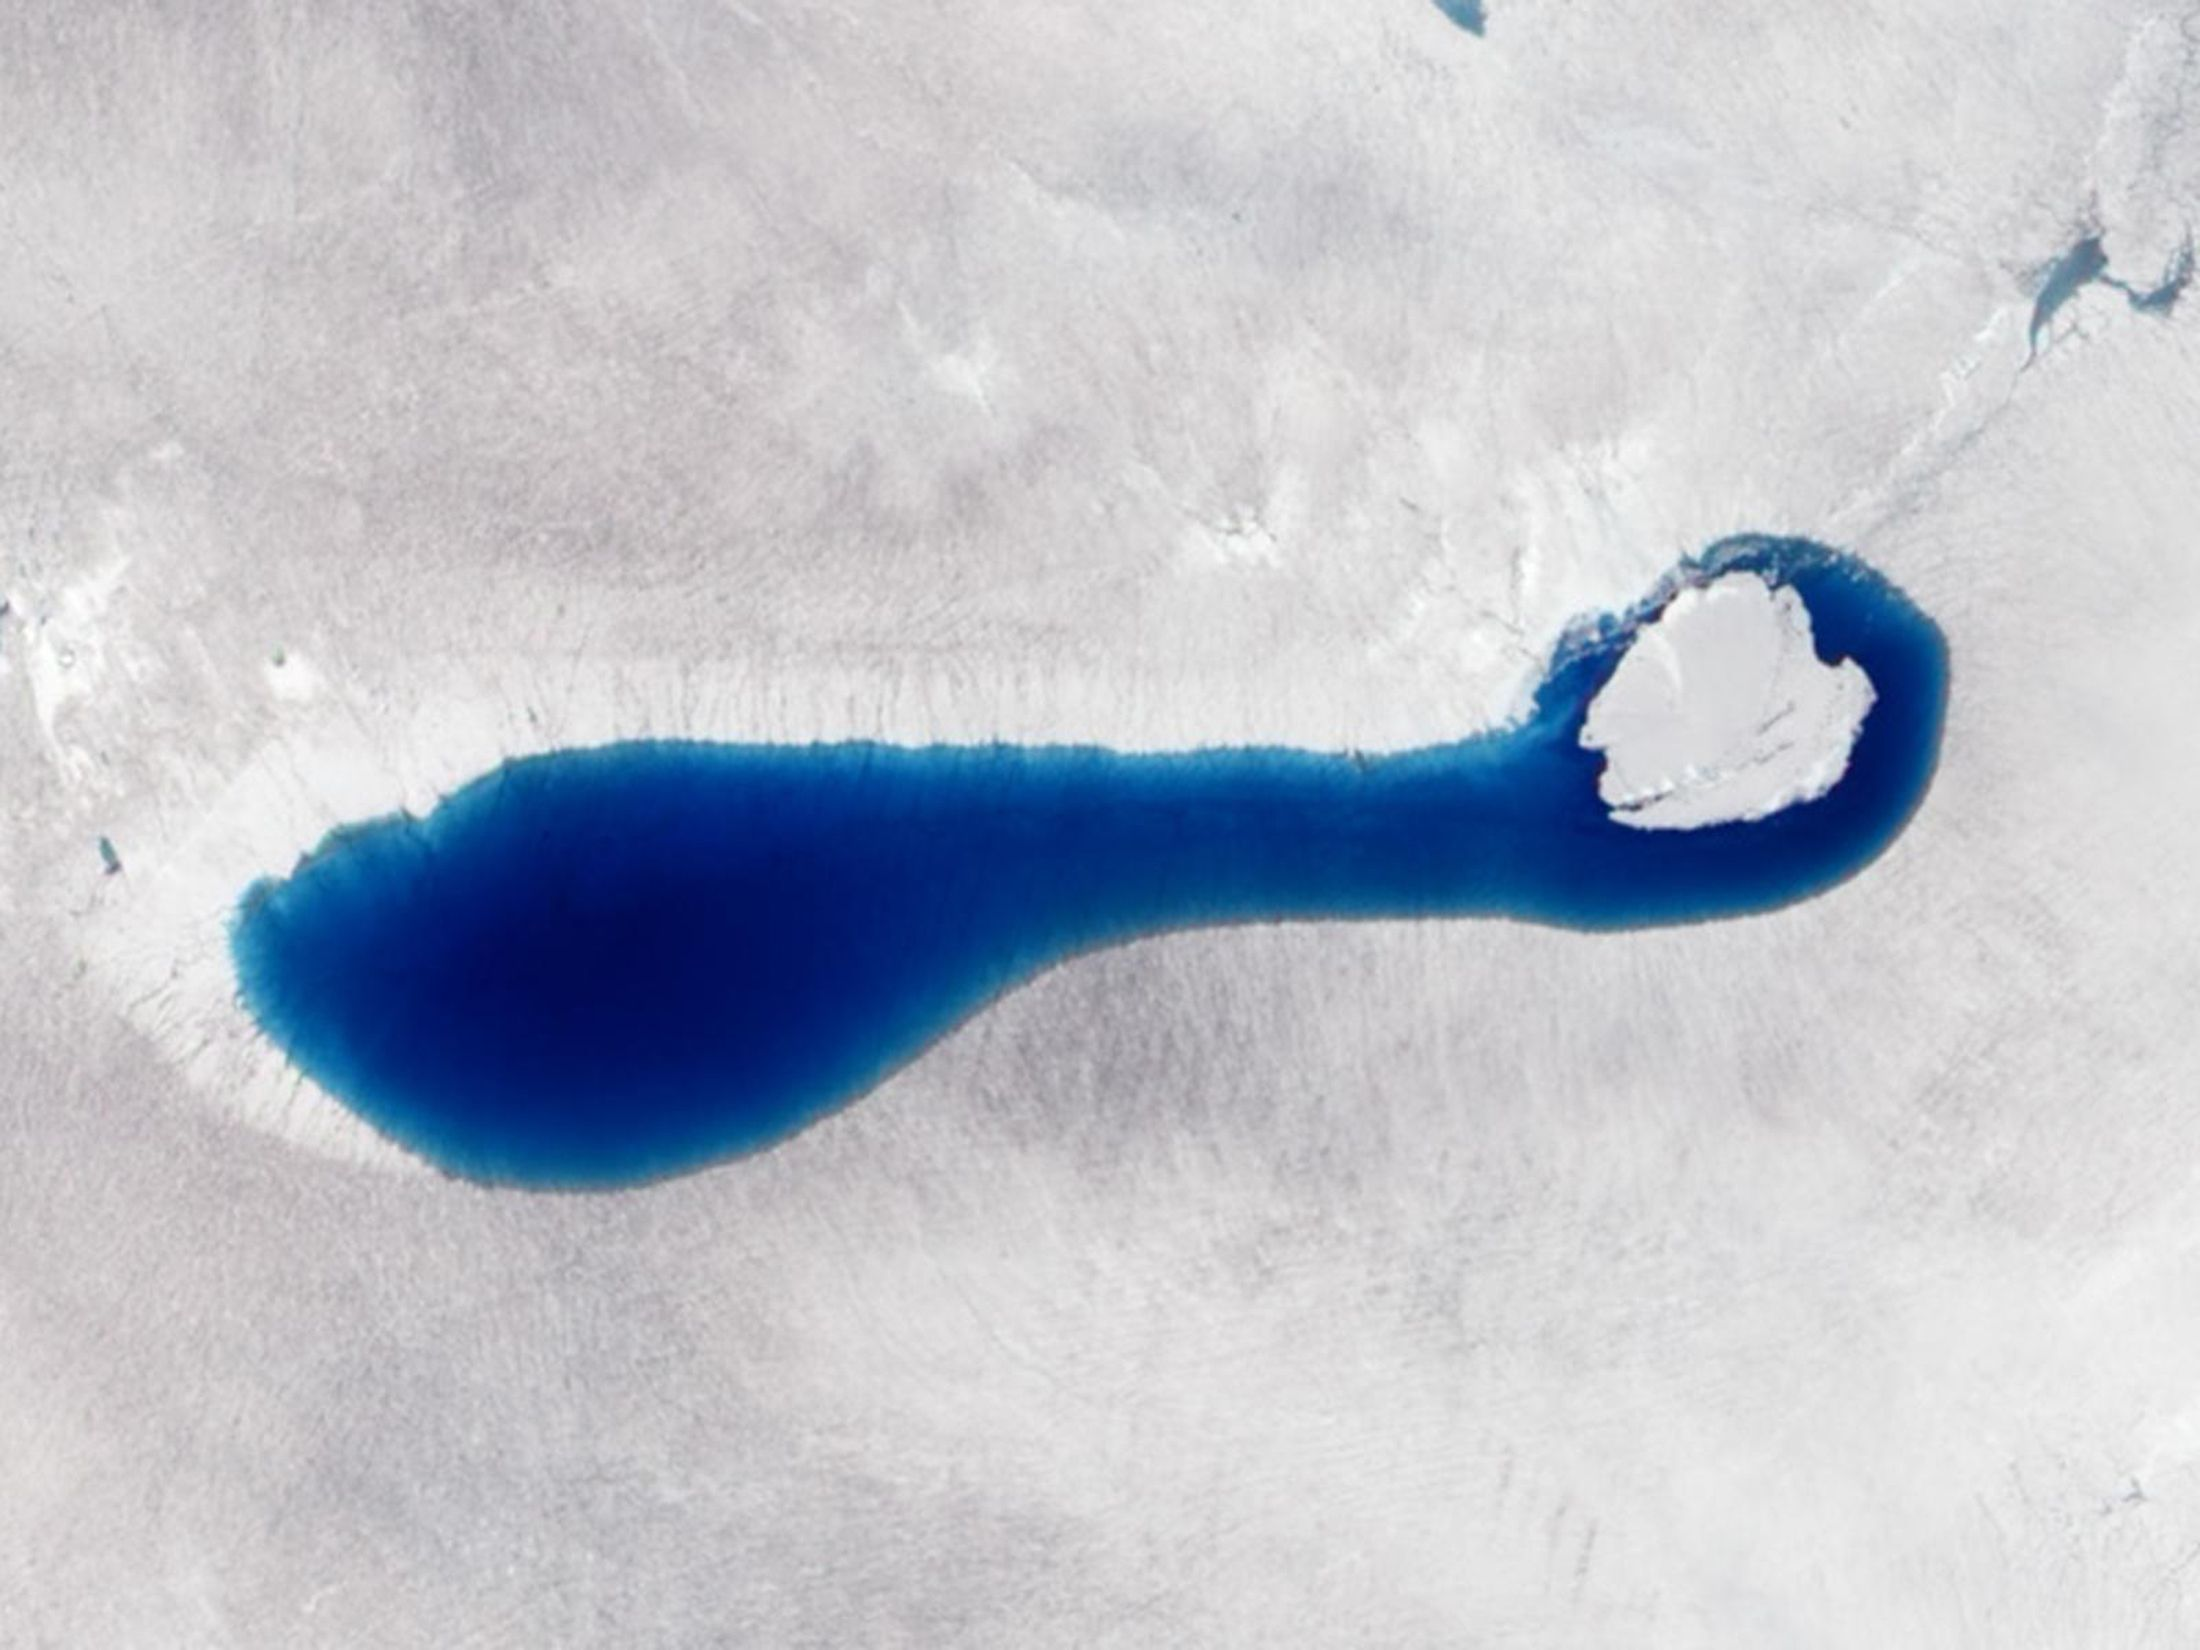 greenland meltwater ocean current study climate change